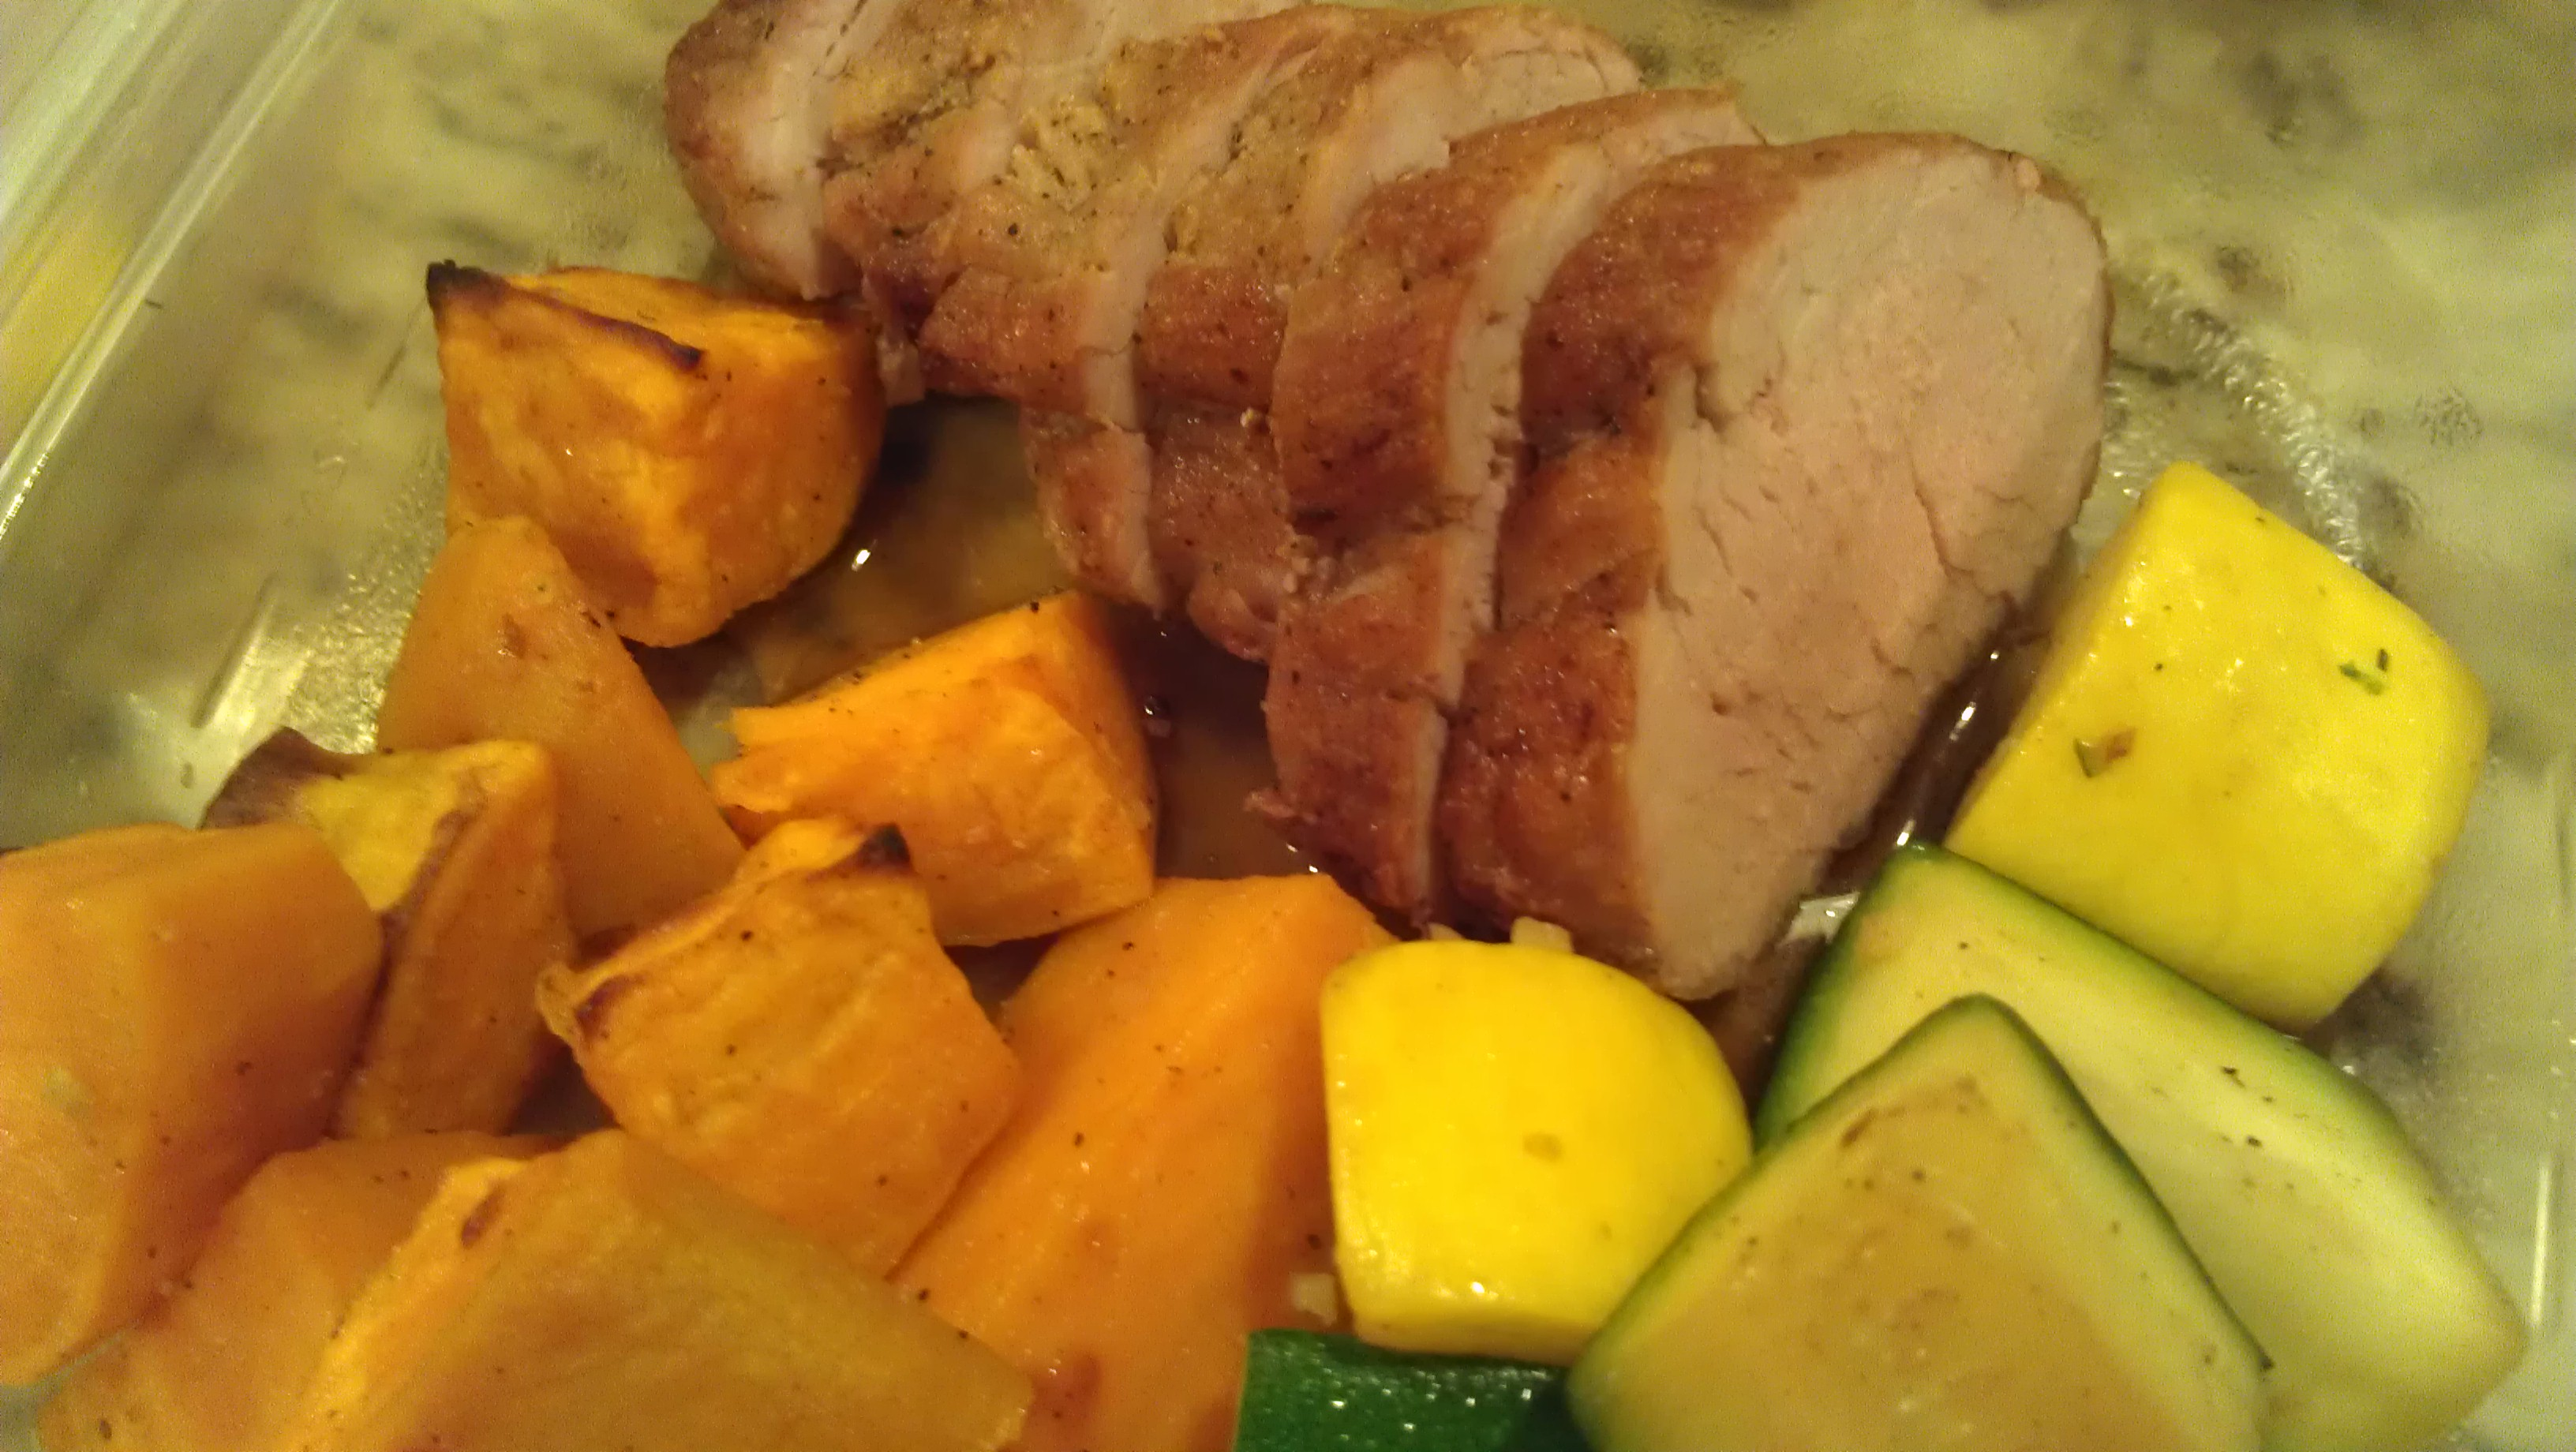 Pork with AppleJack glaze pic